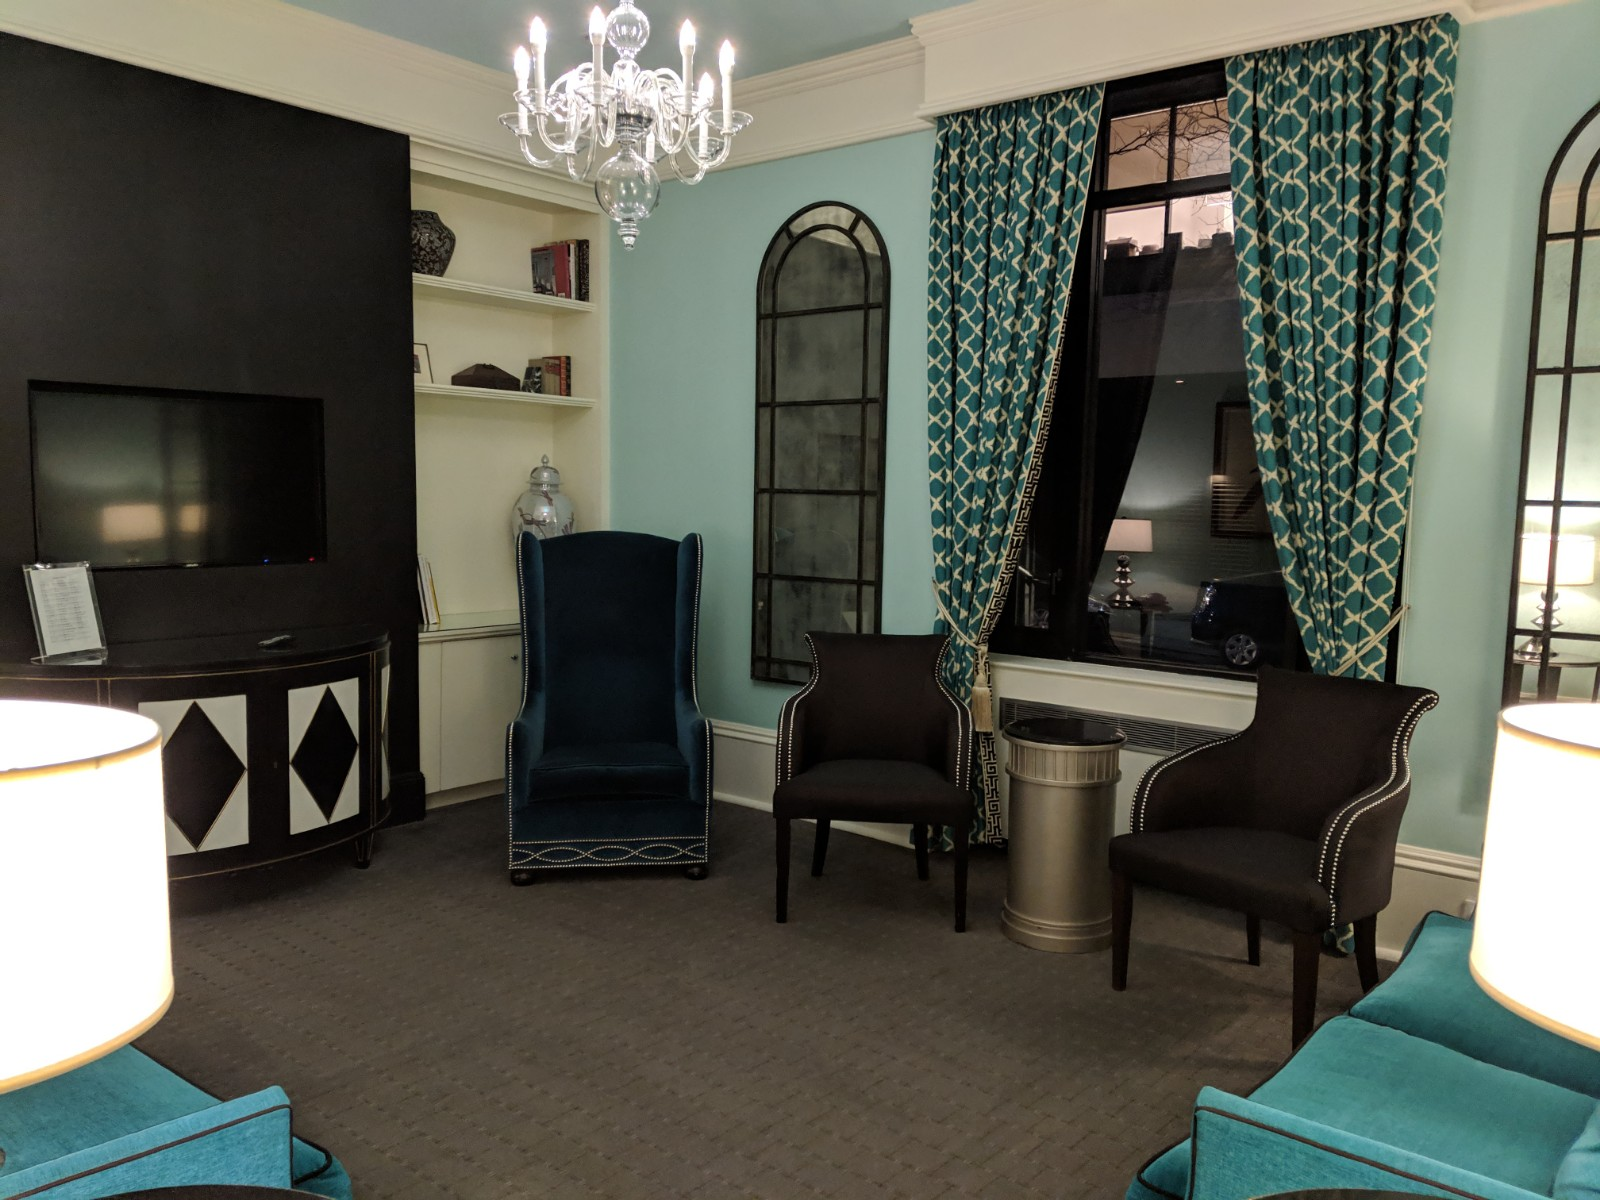 The lounge room at the seton hotel